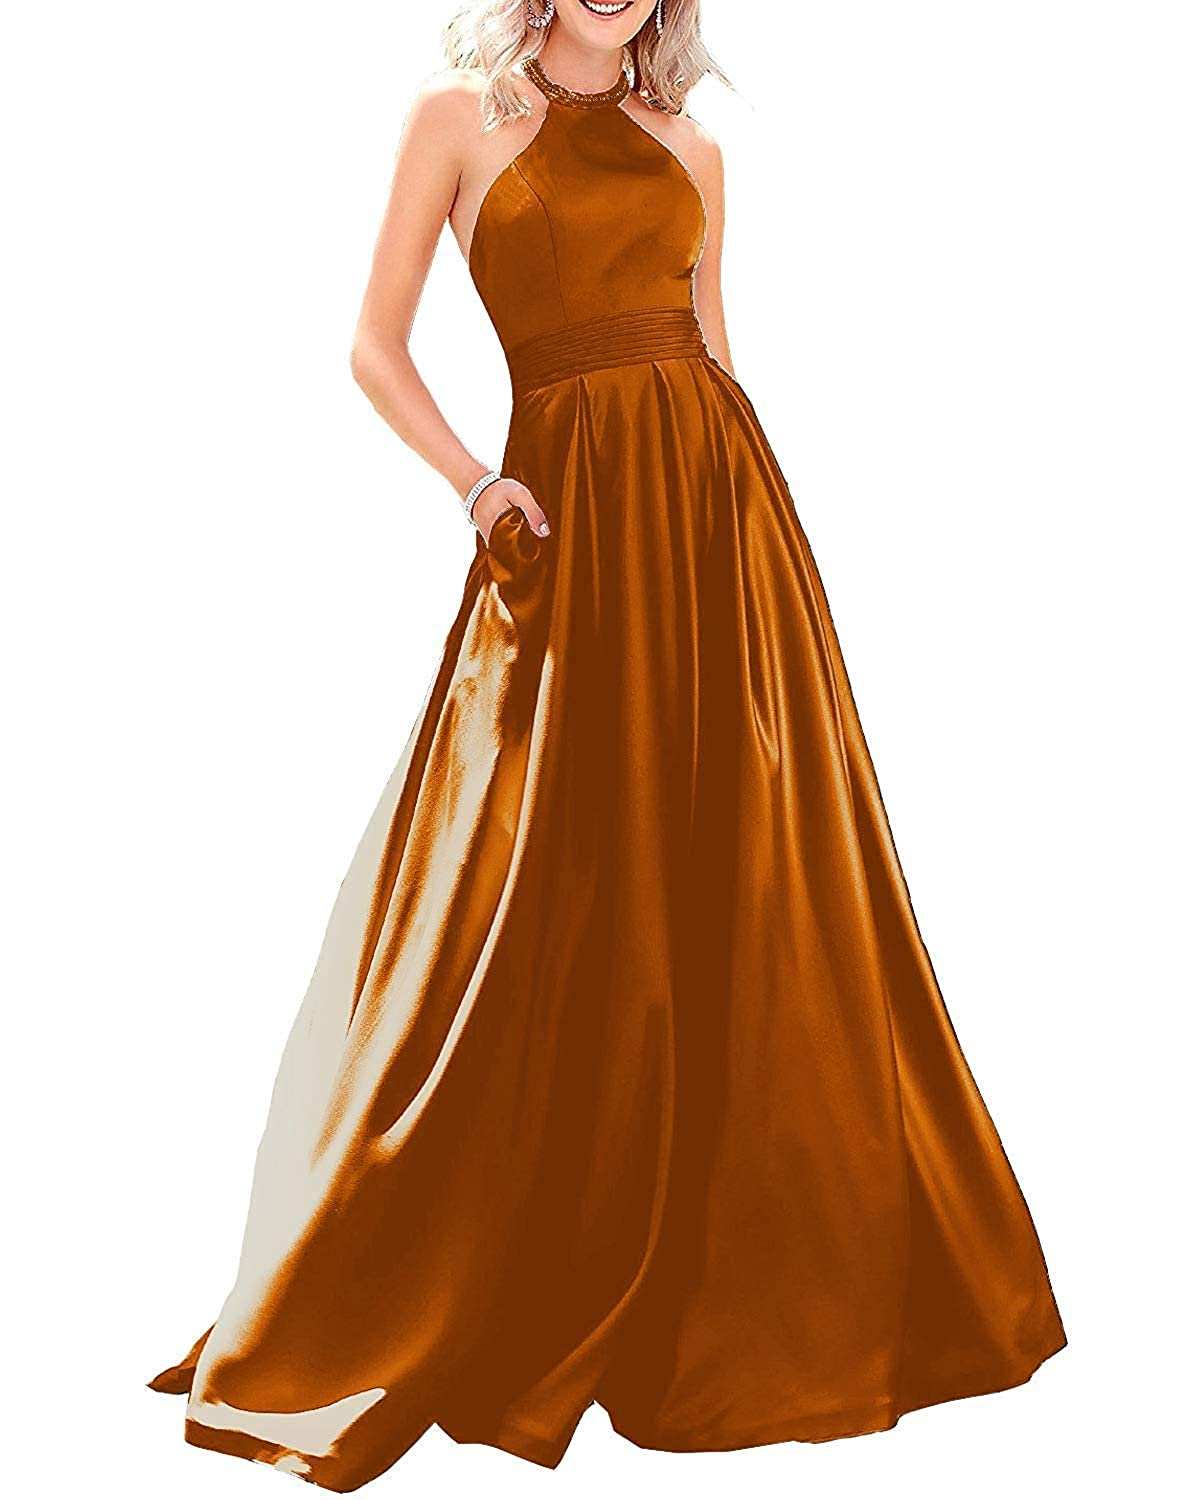 Ginger Sulidi Women's Halter Long Satin Prom Dresses Backless Ball Gown Evening Party Formal Dress C100